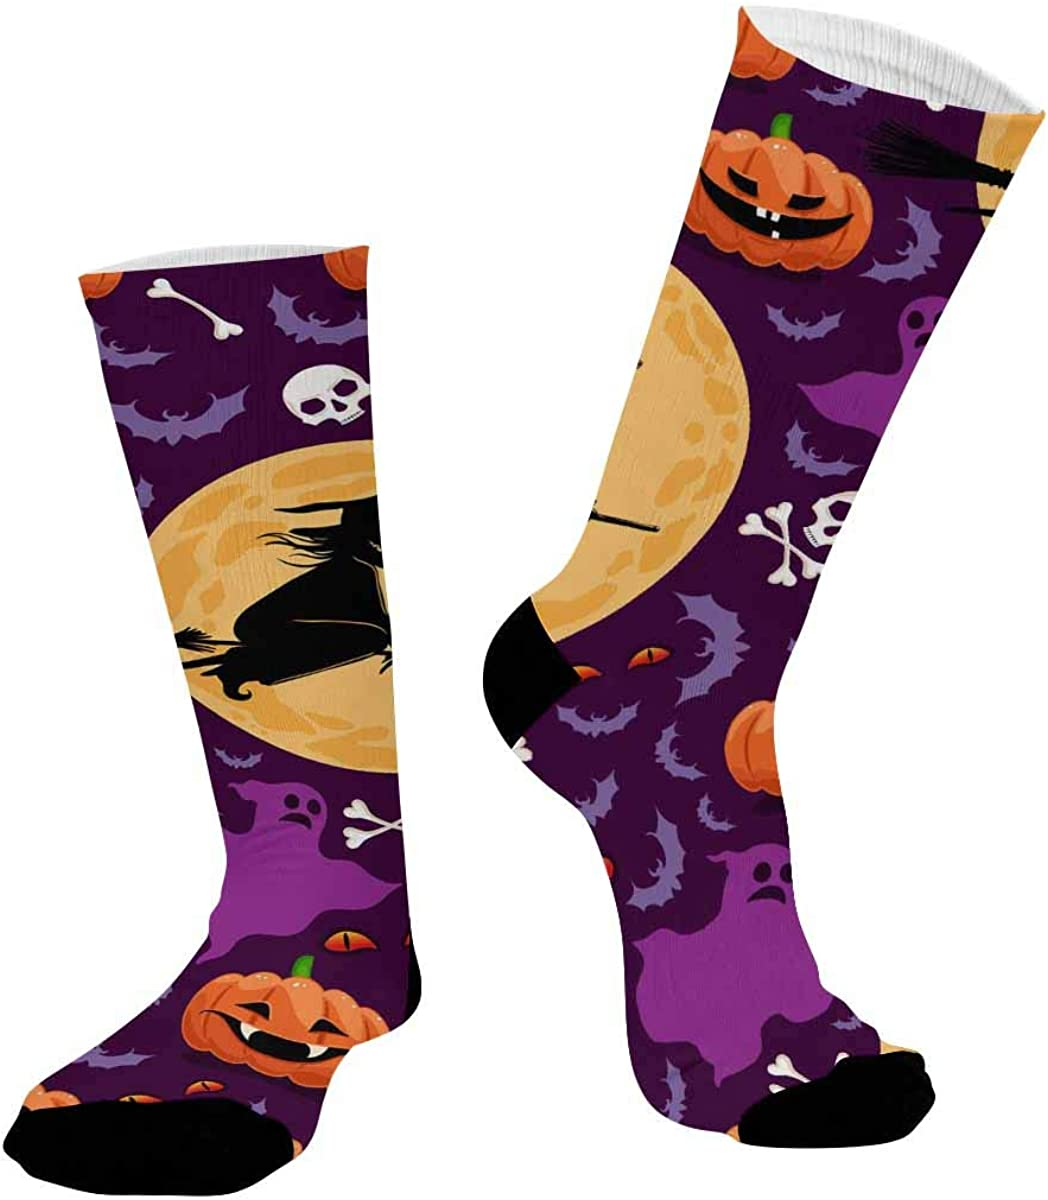 INTERESTPRINT Breathable Sublimated Crew Socks Outdoor Athletic Socks Halloween with Pumpkins